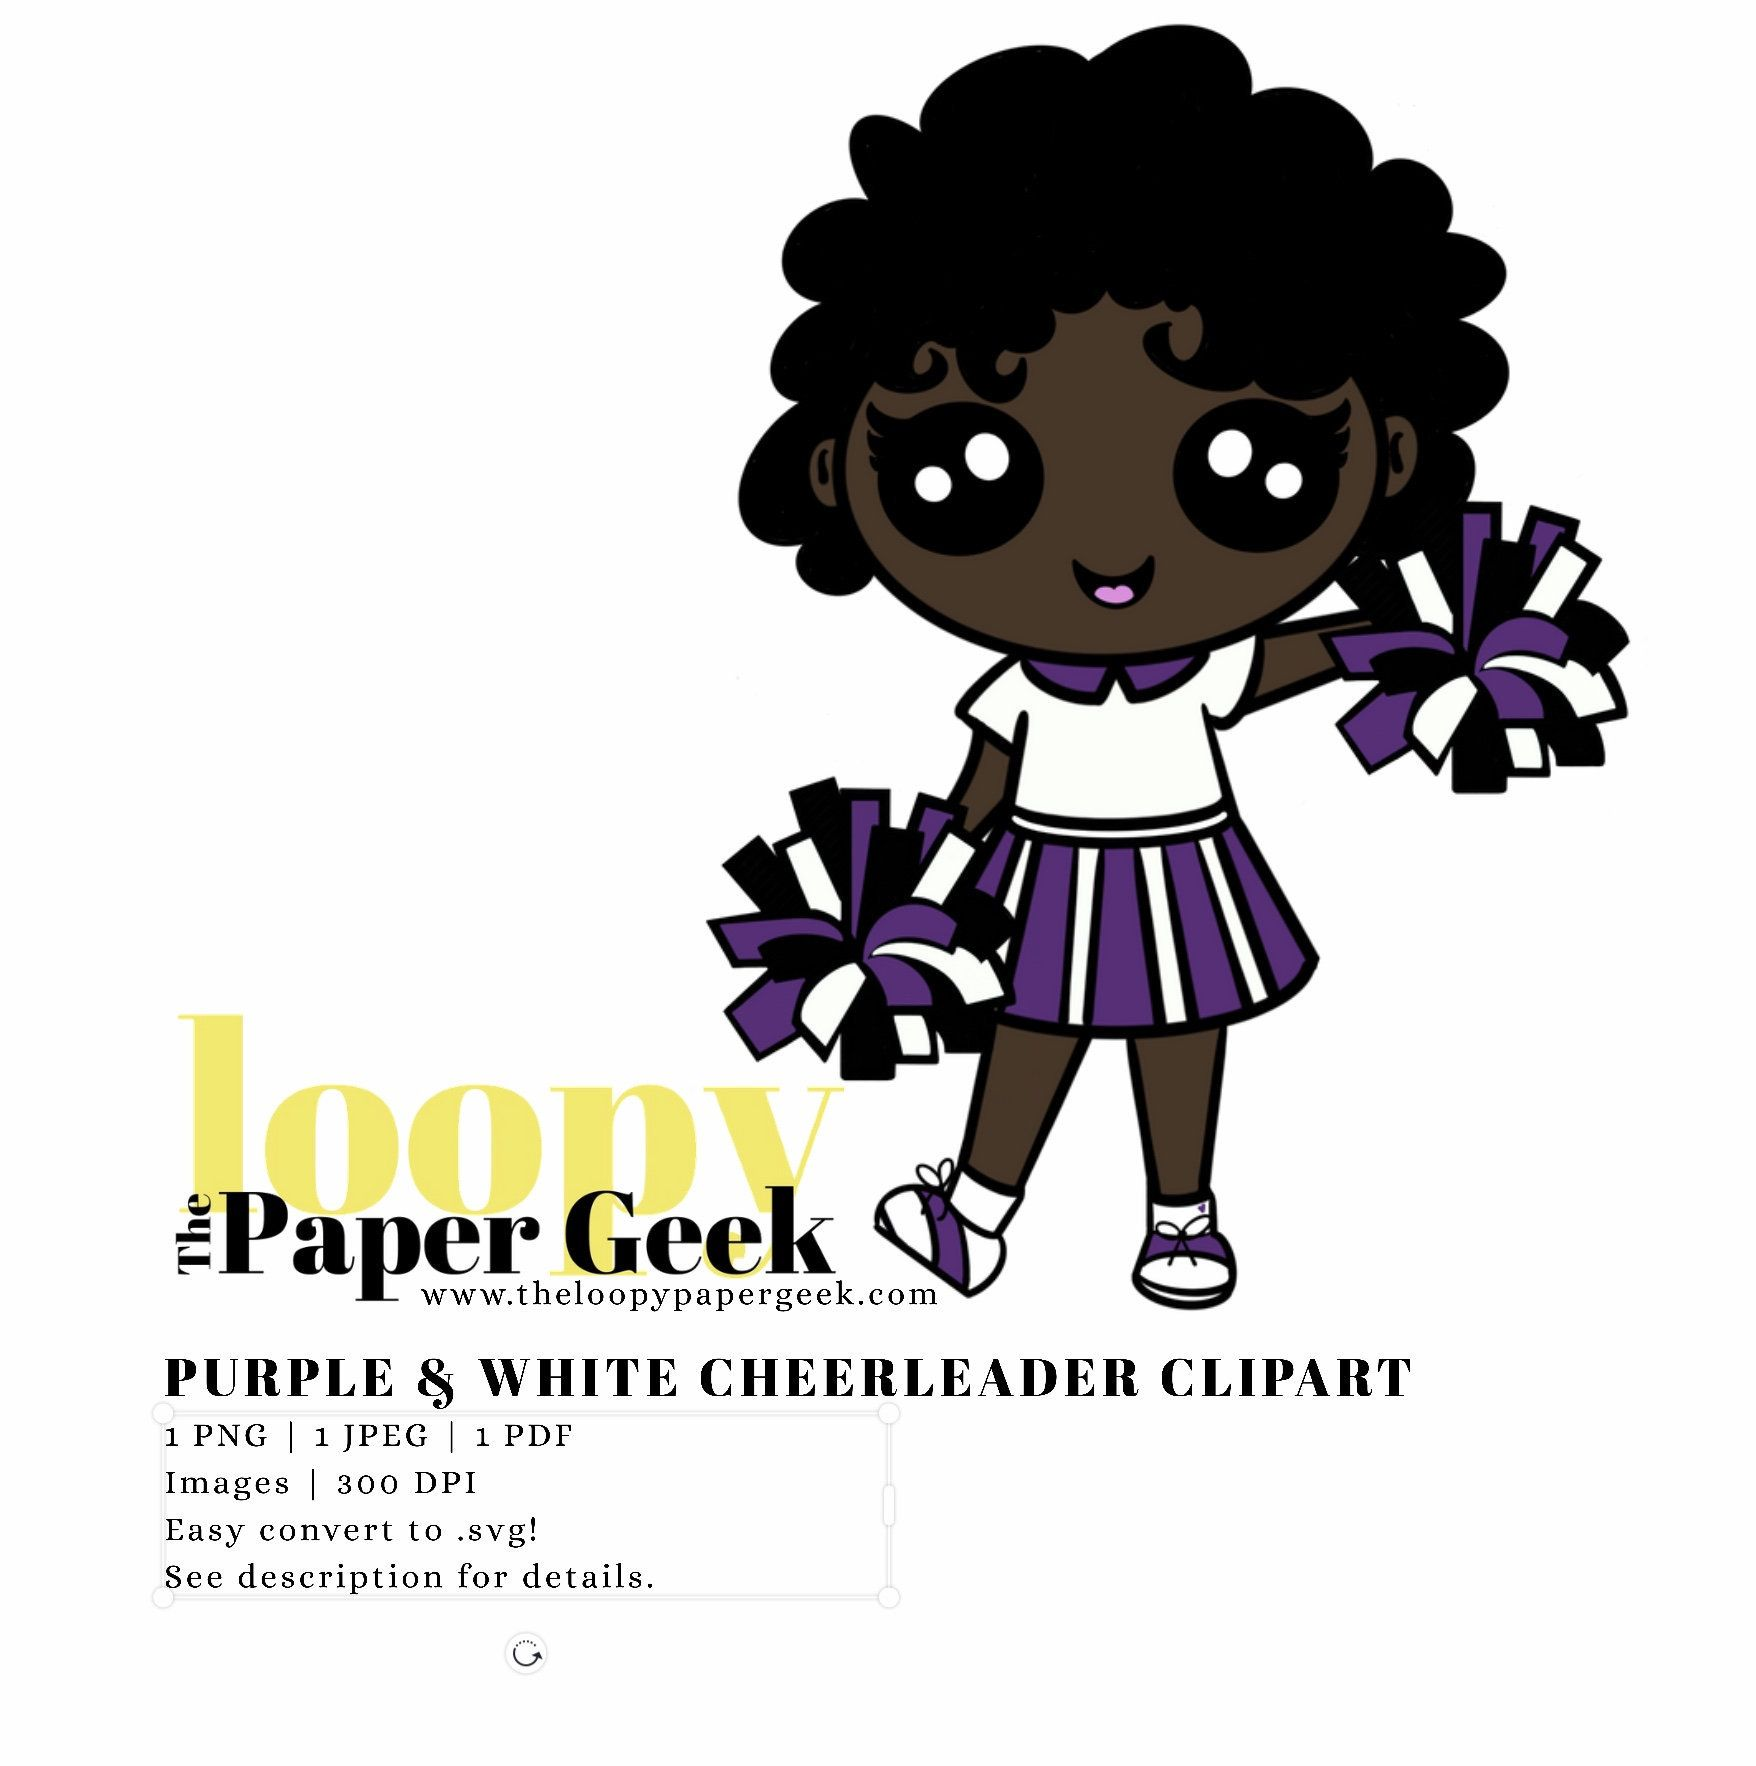 small resolution of purple and white cheerleader clipart illustration easy convert to svg